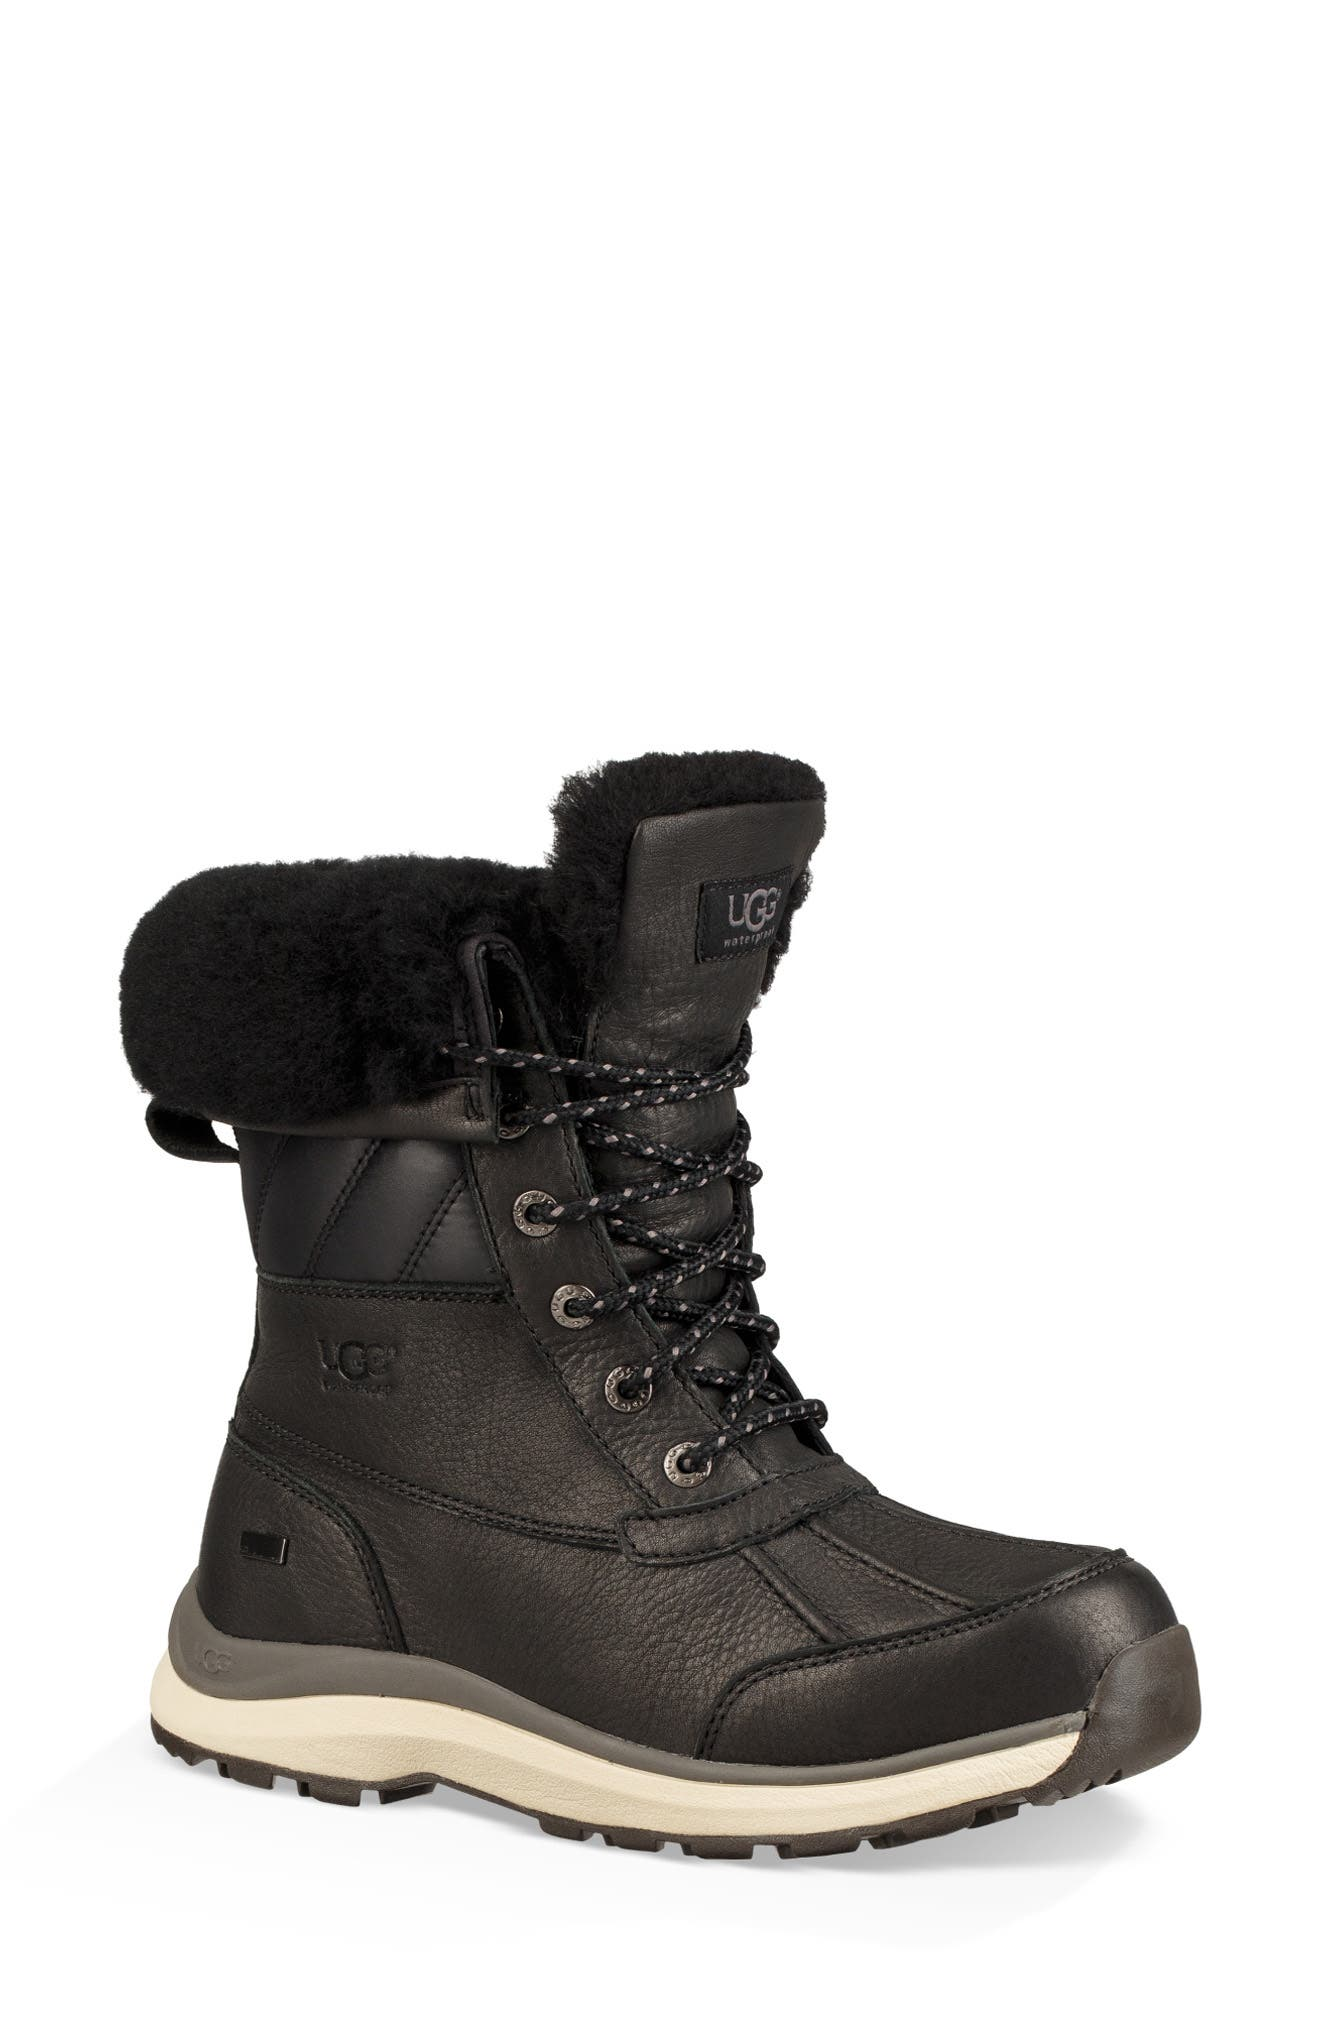 Adirondack III Waterproof Insulated Winter Bootie,                             Main thumbnail 1, color,                             BLACK LEATHER